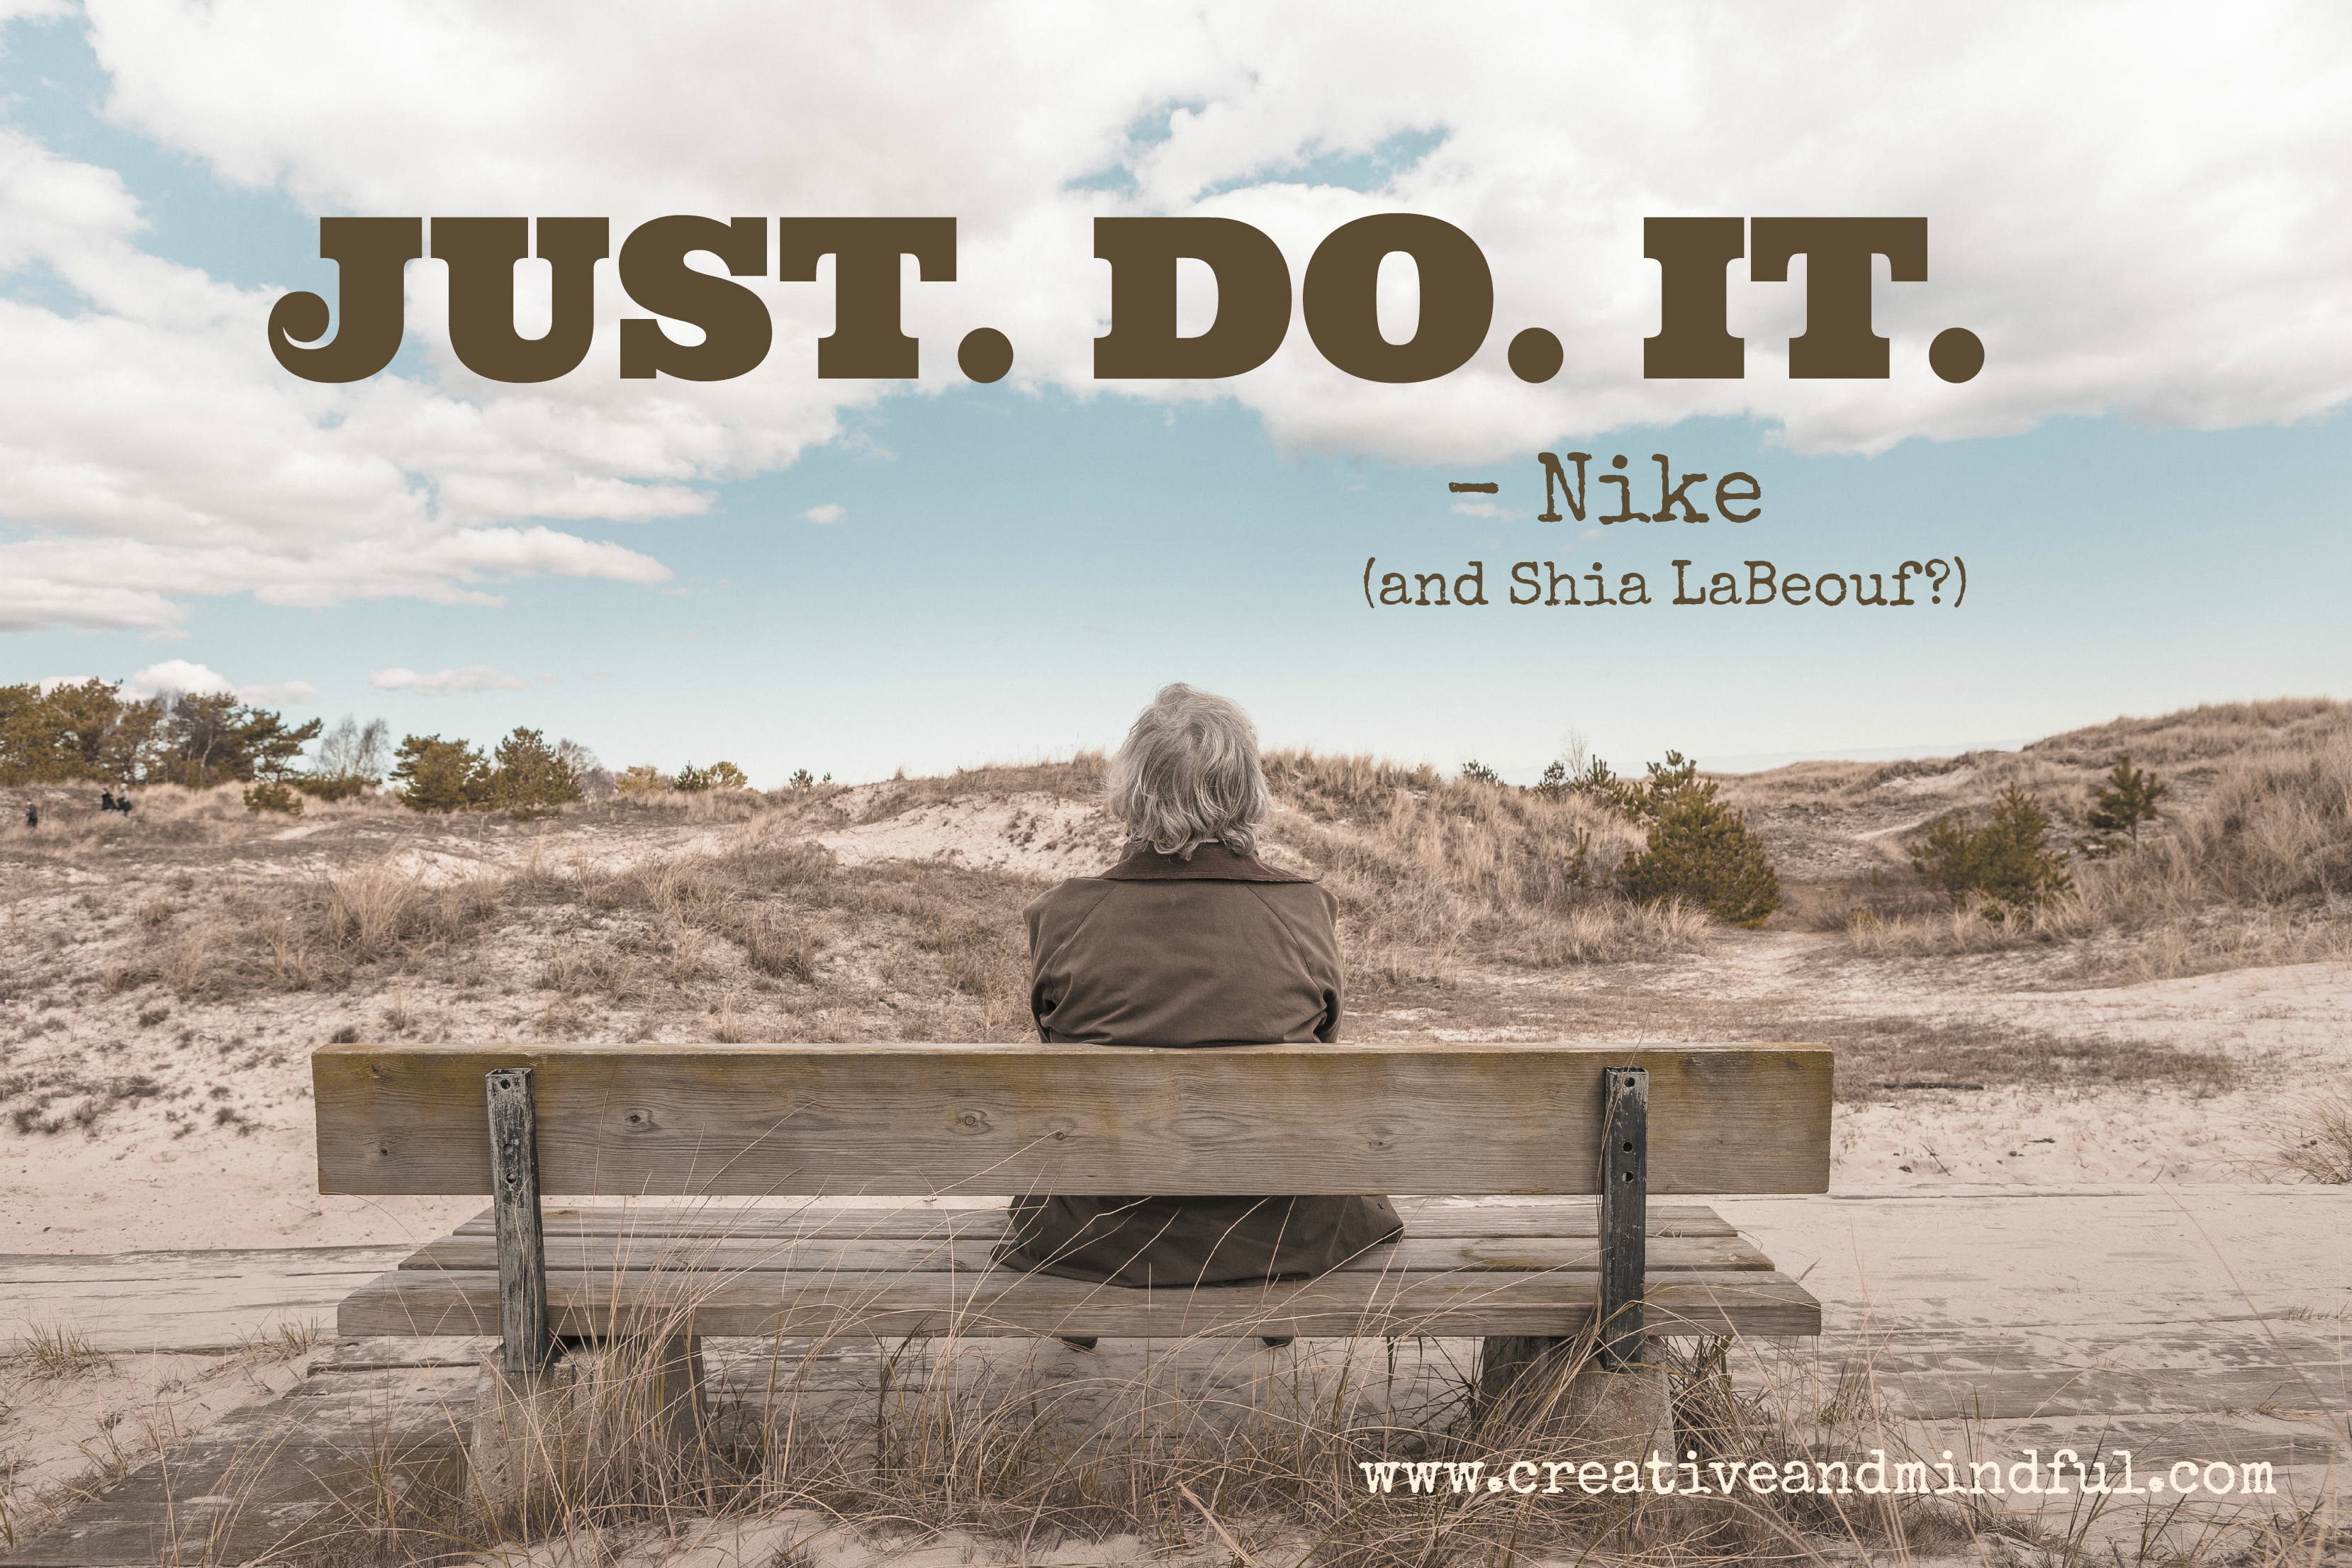 Just. Do. It.